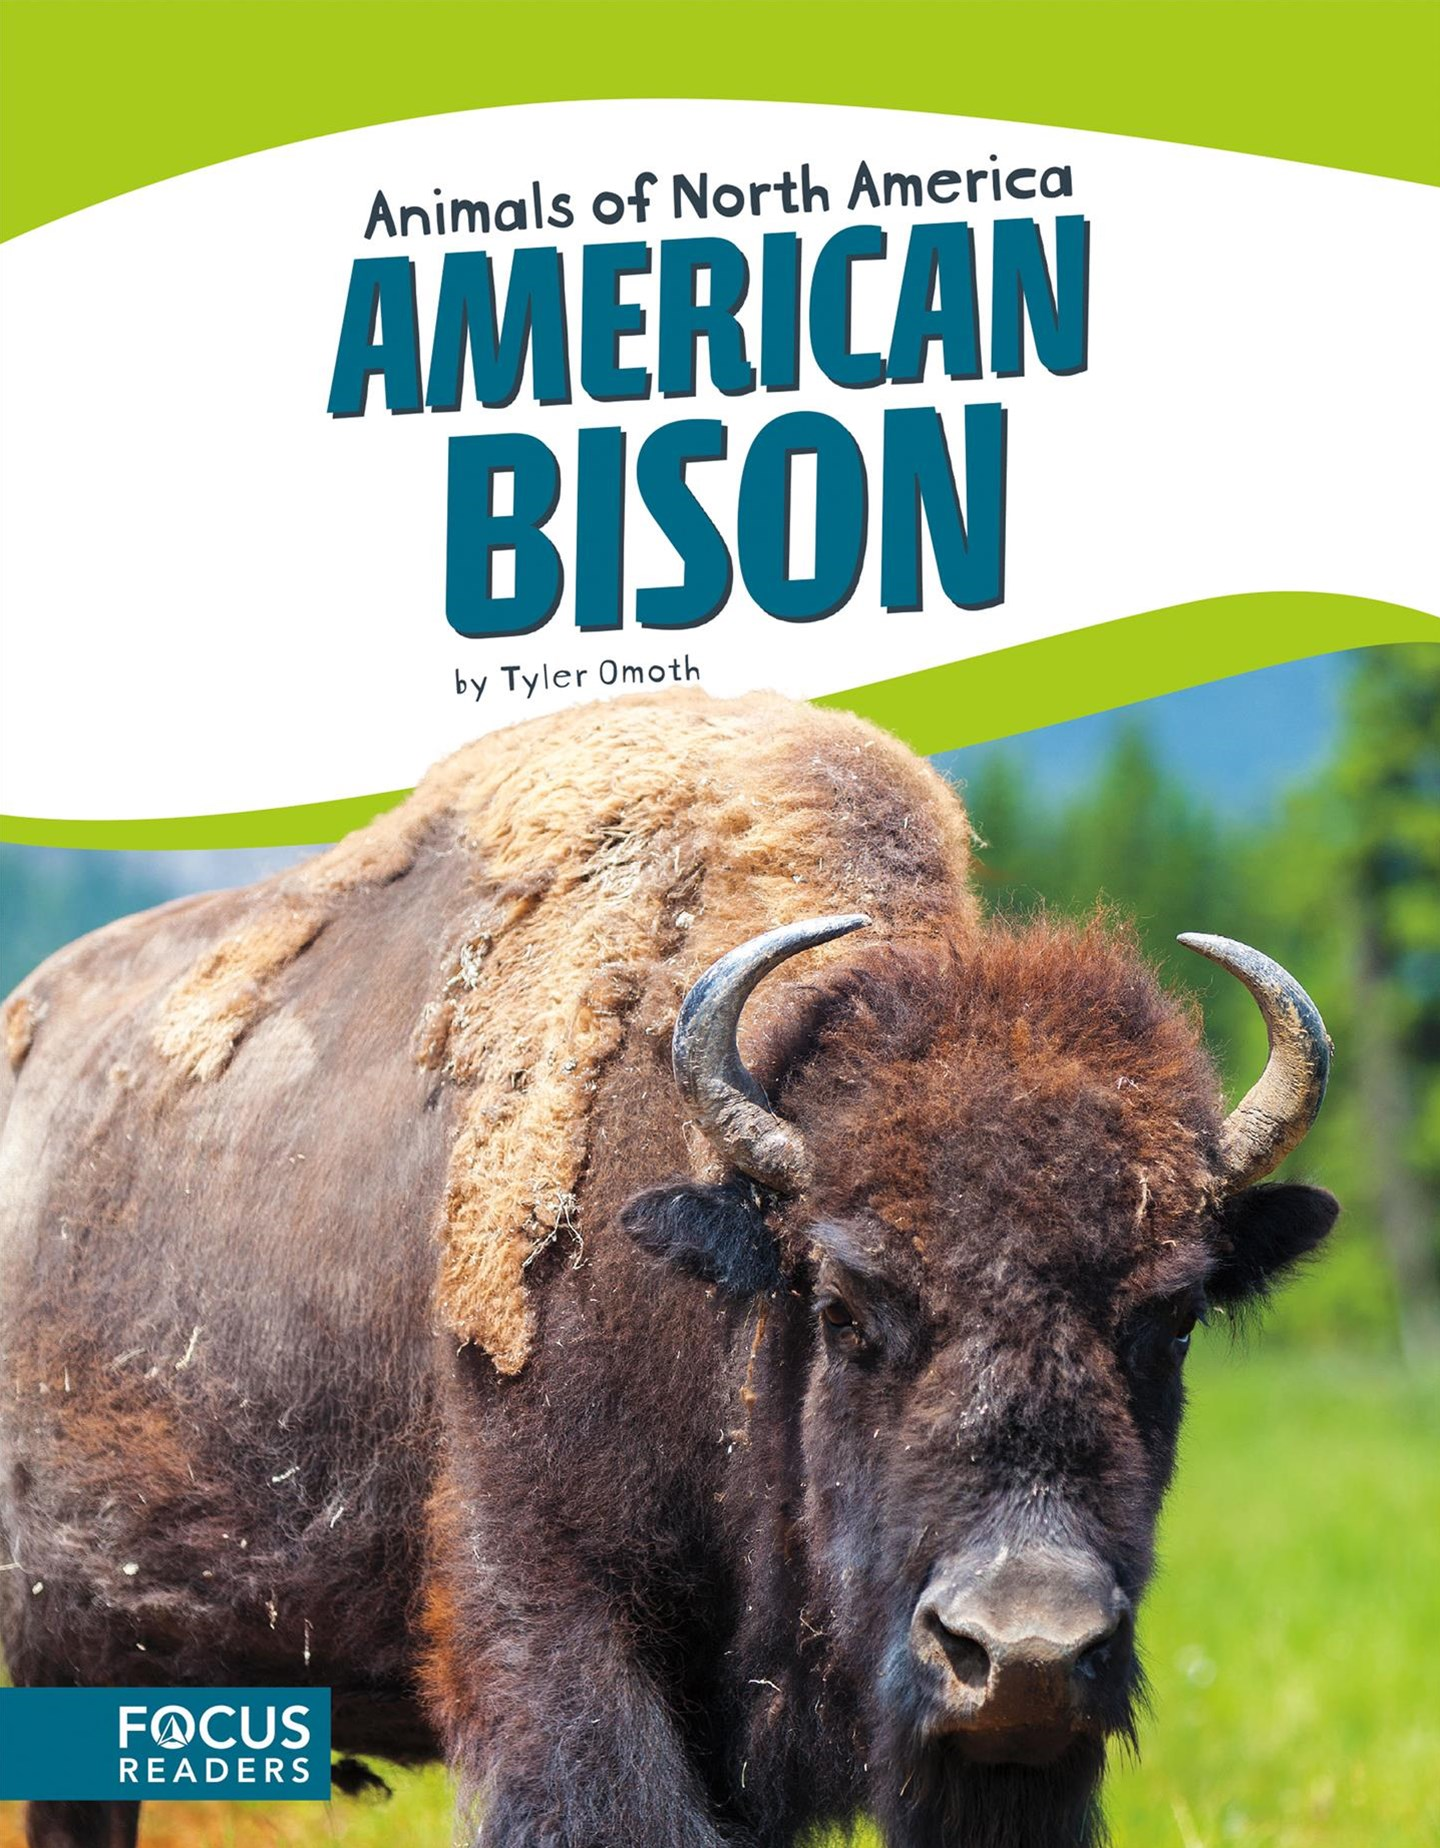 Animals of North America: American Bison